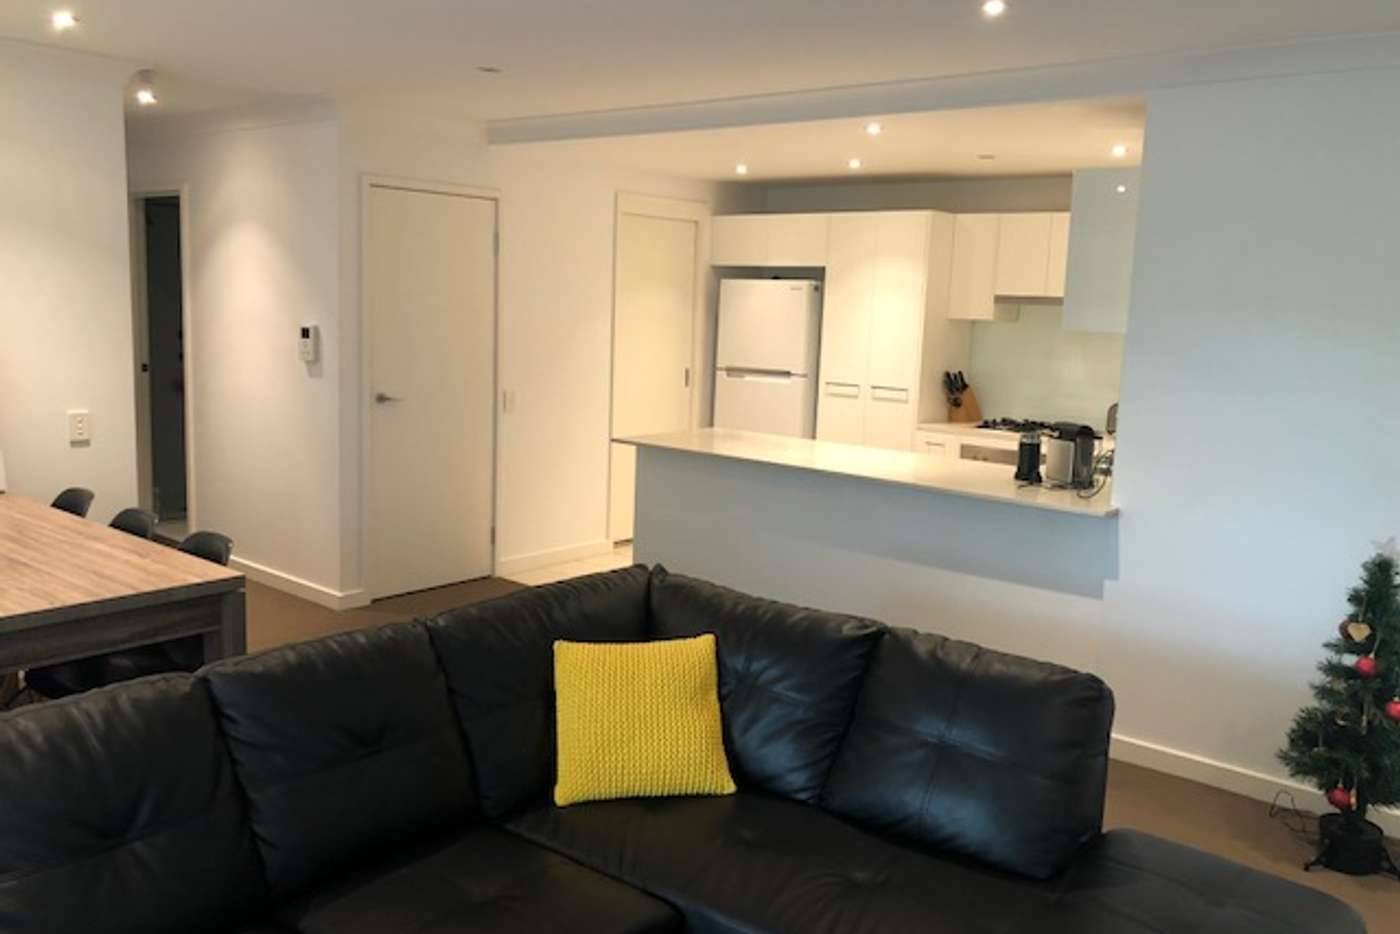 Main view of Homely apartment listing, 1/16-20 Keira Street, Wollongong NSW 2500